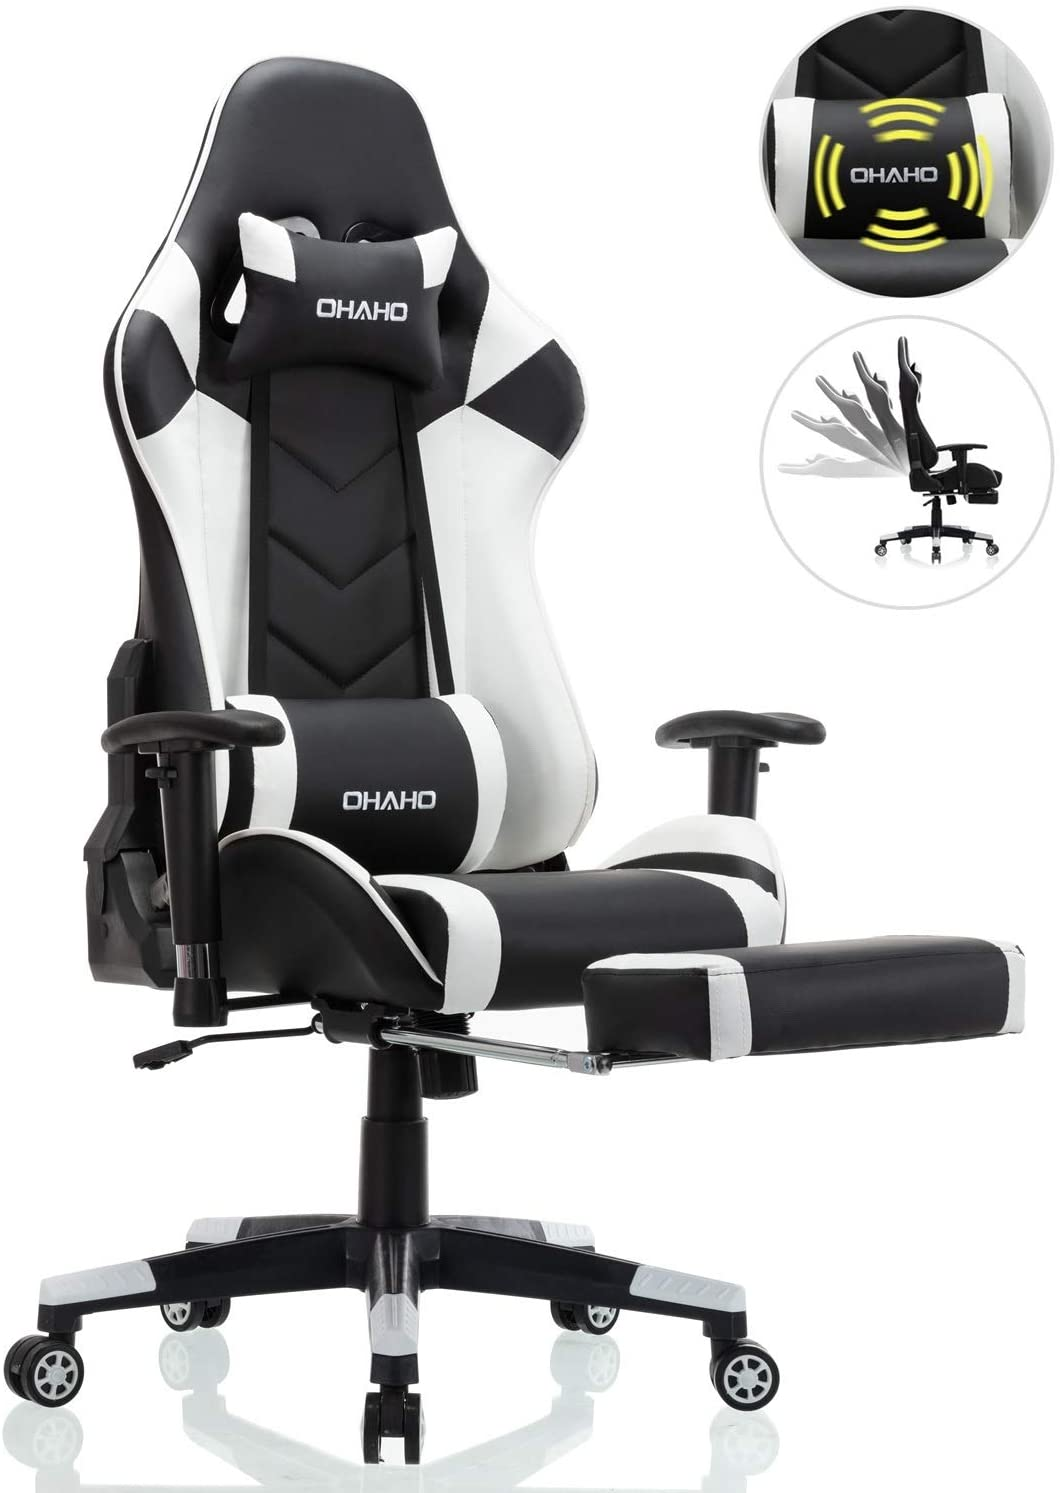 High Back Racing Gaming Chair Computer Desk Chair Adjustable Swivel Office Chair